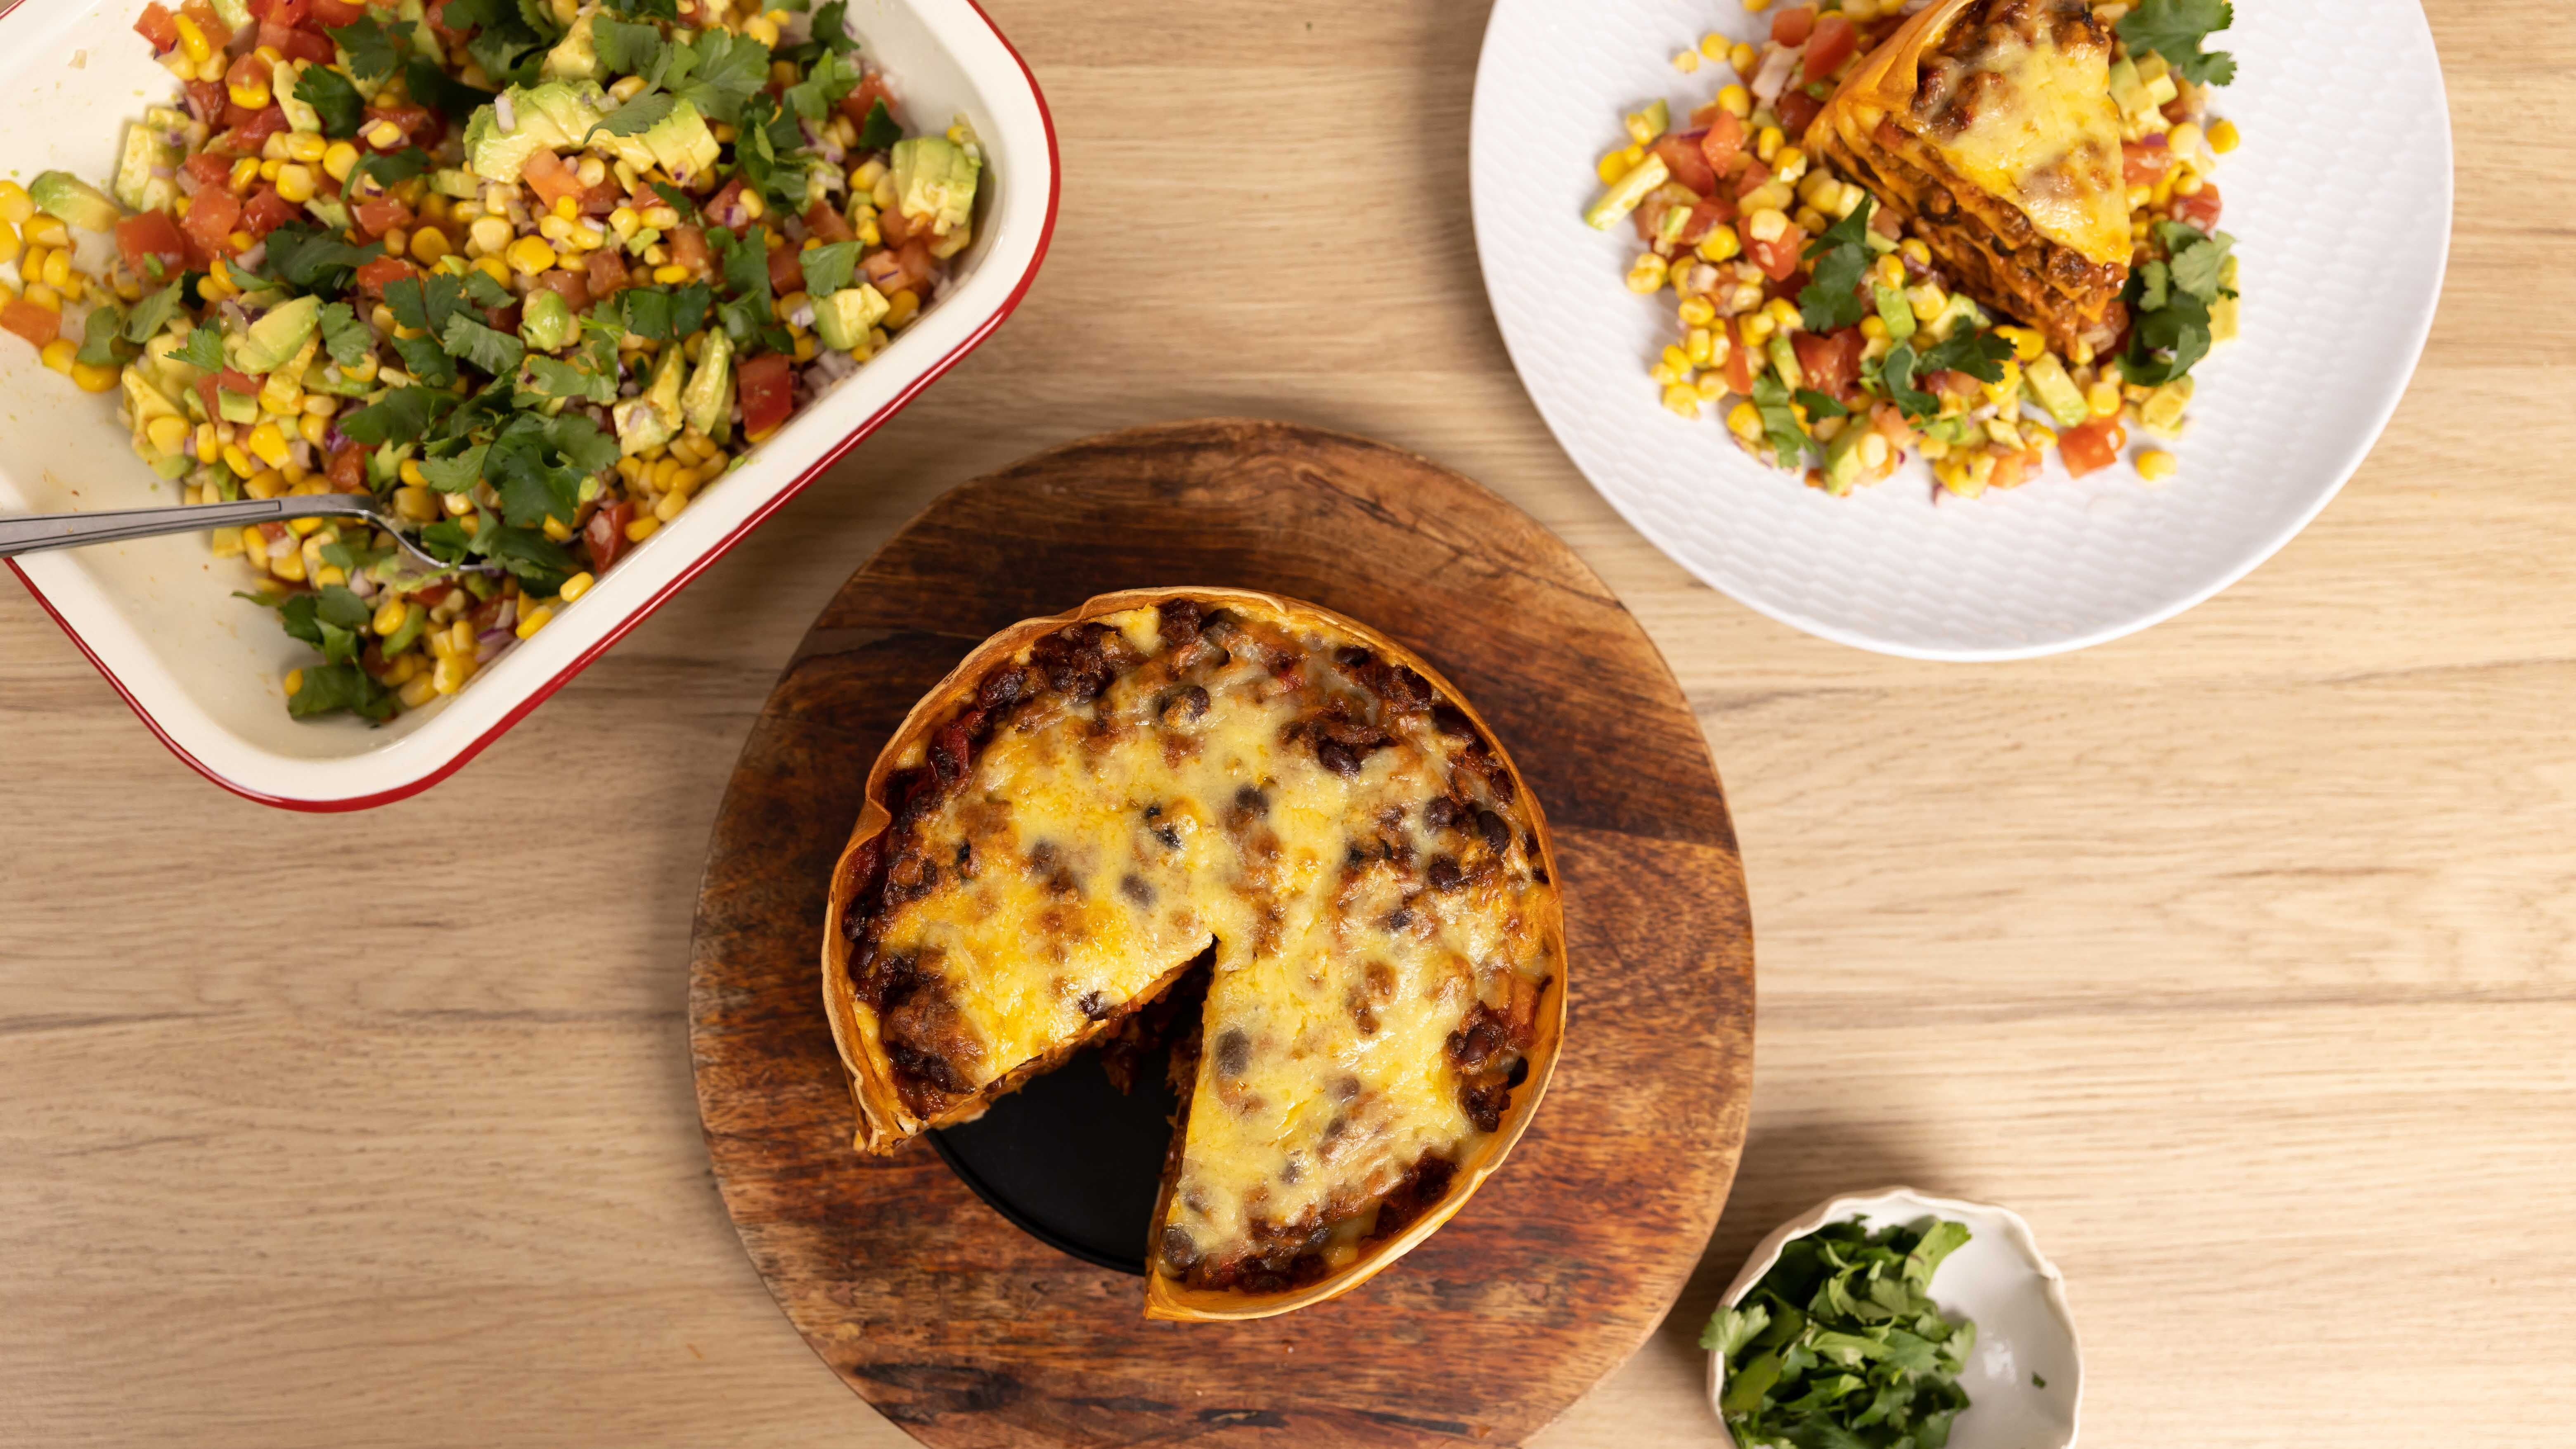 The recipe that reinvents your tortillas